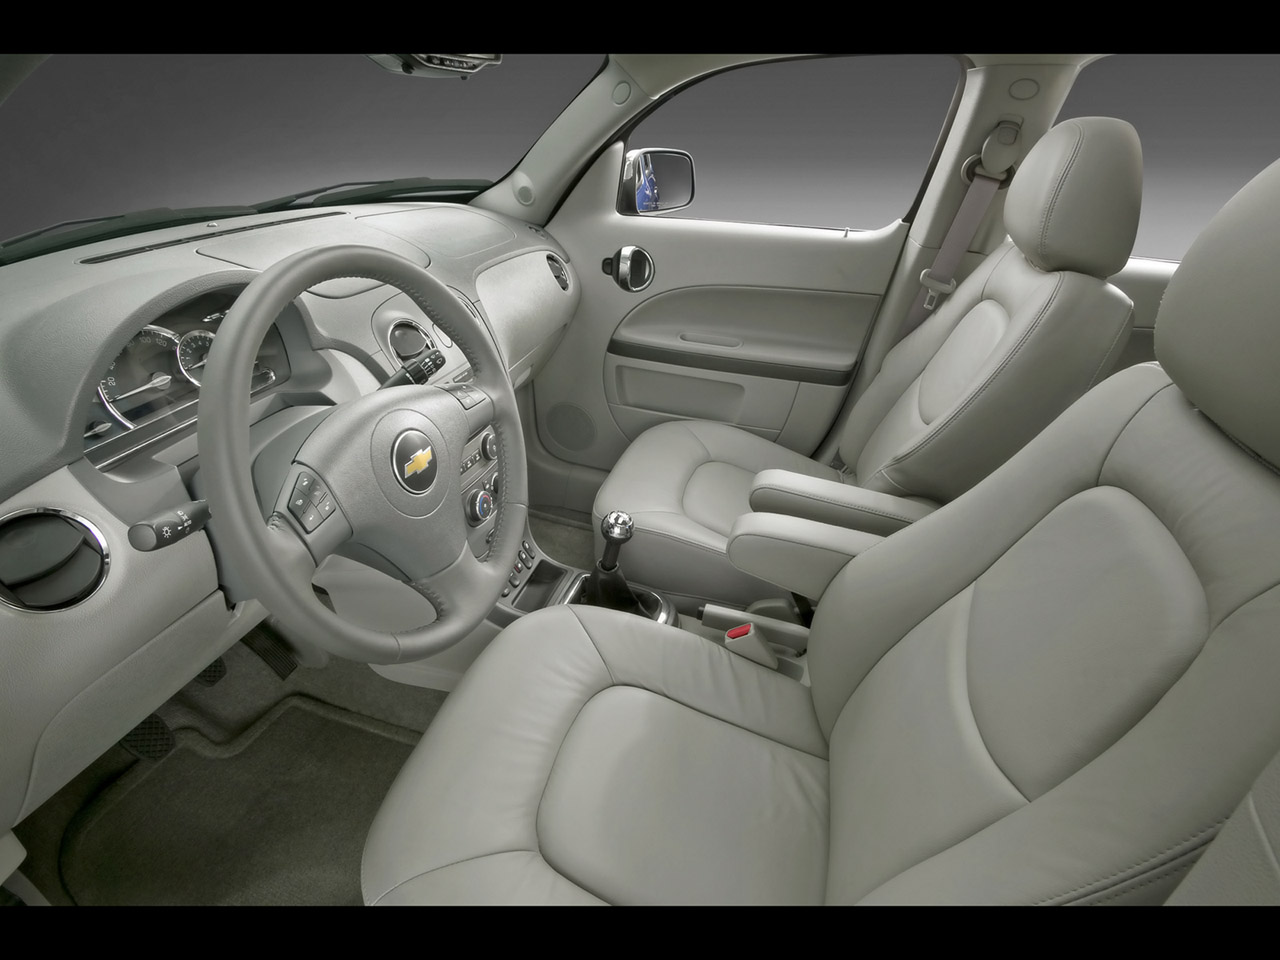 CHEVROLET HHR 2.4 interior